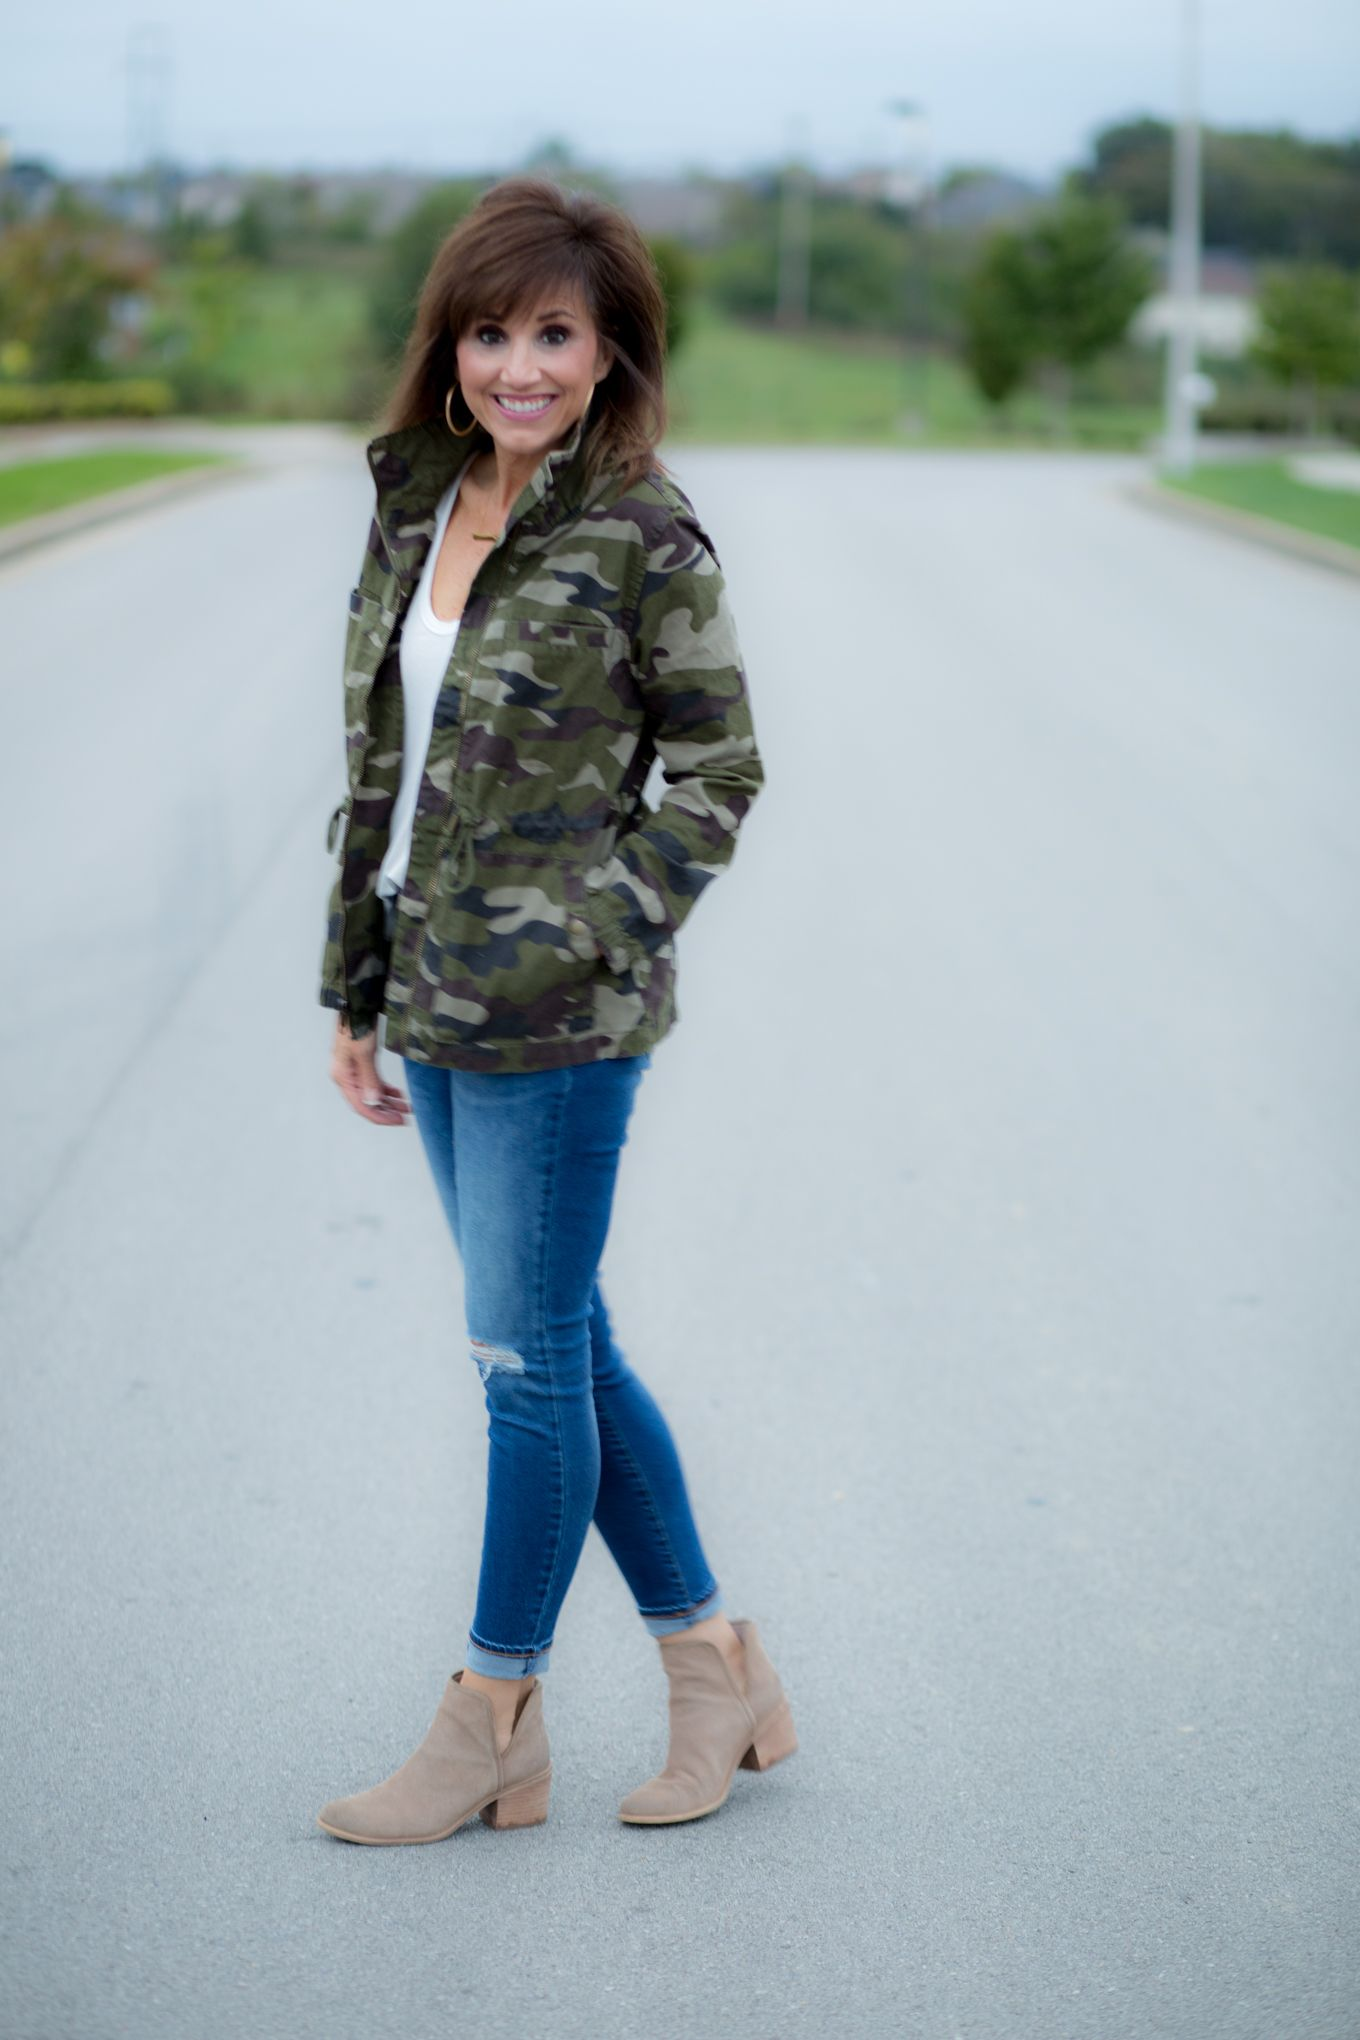 88ecb310641f8 Camo Jacket + Distressed Jeans + Booties | FASHION FOR WOMEN OVER 40 ...